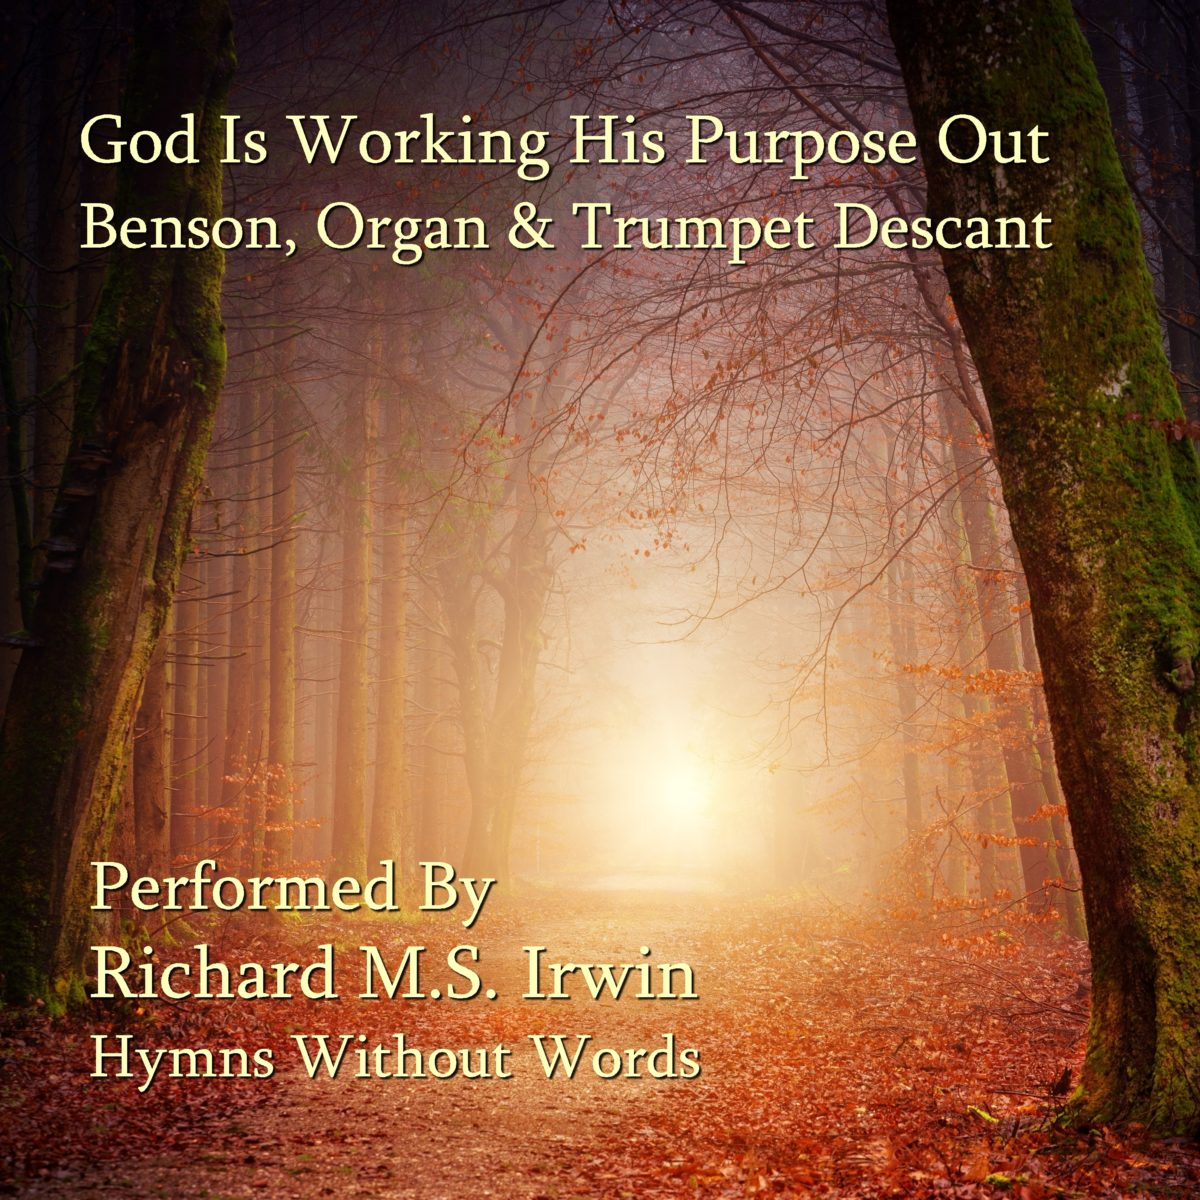 God Is Working His Purpose Out (Benson – 5 Verses) – Orchestra